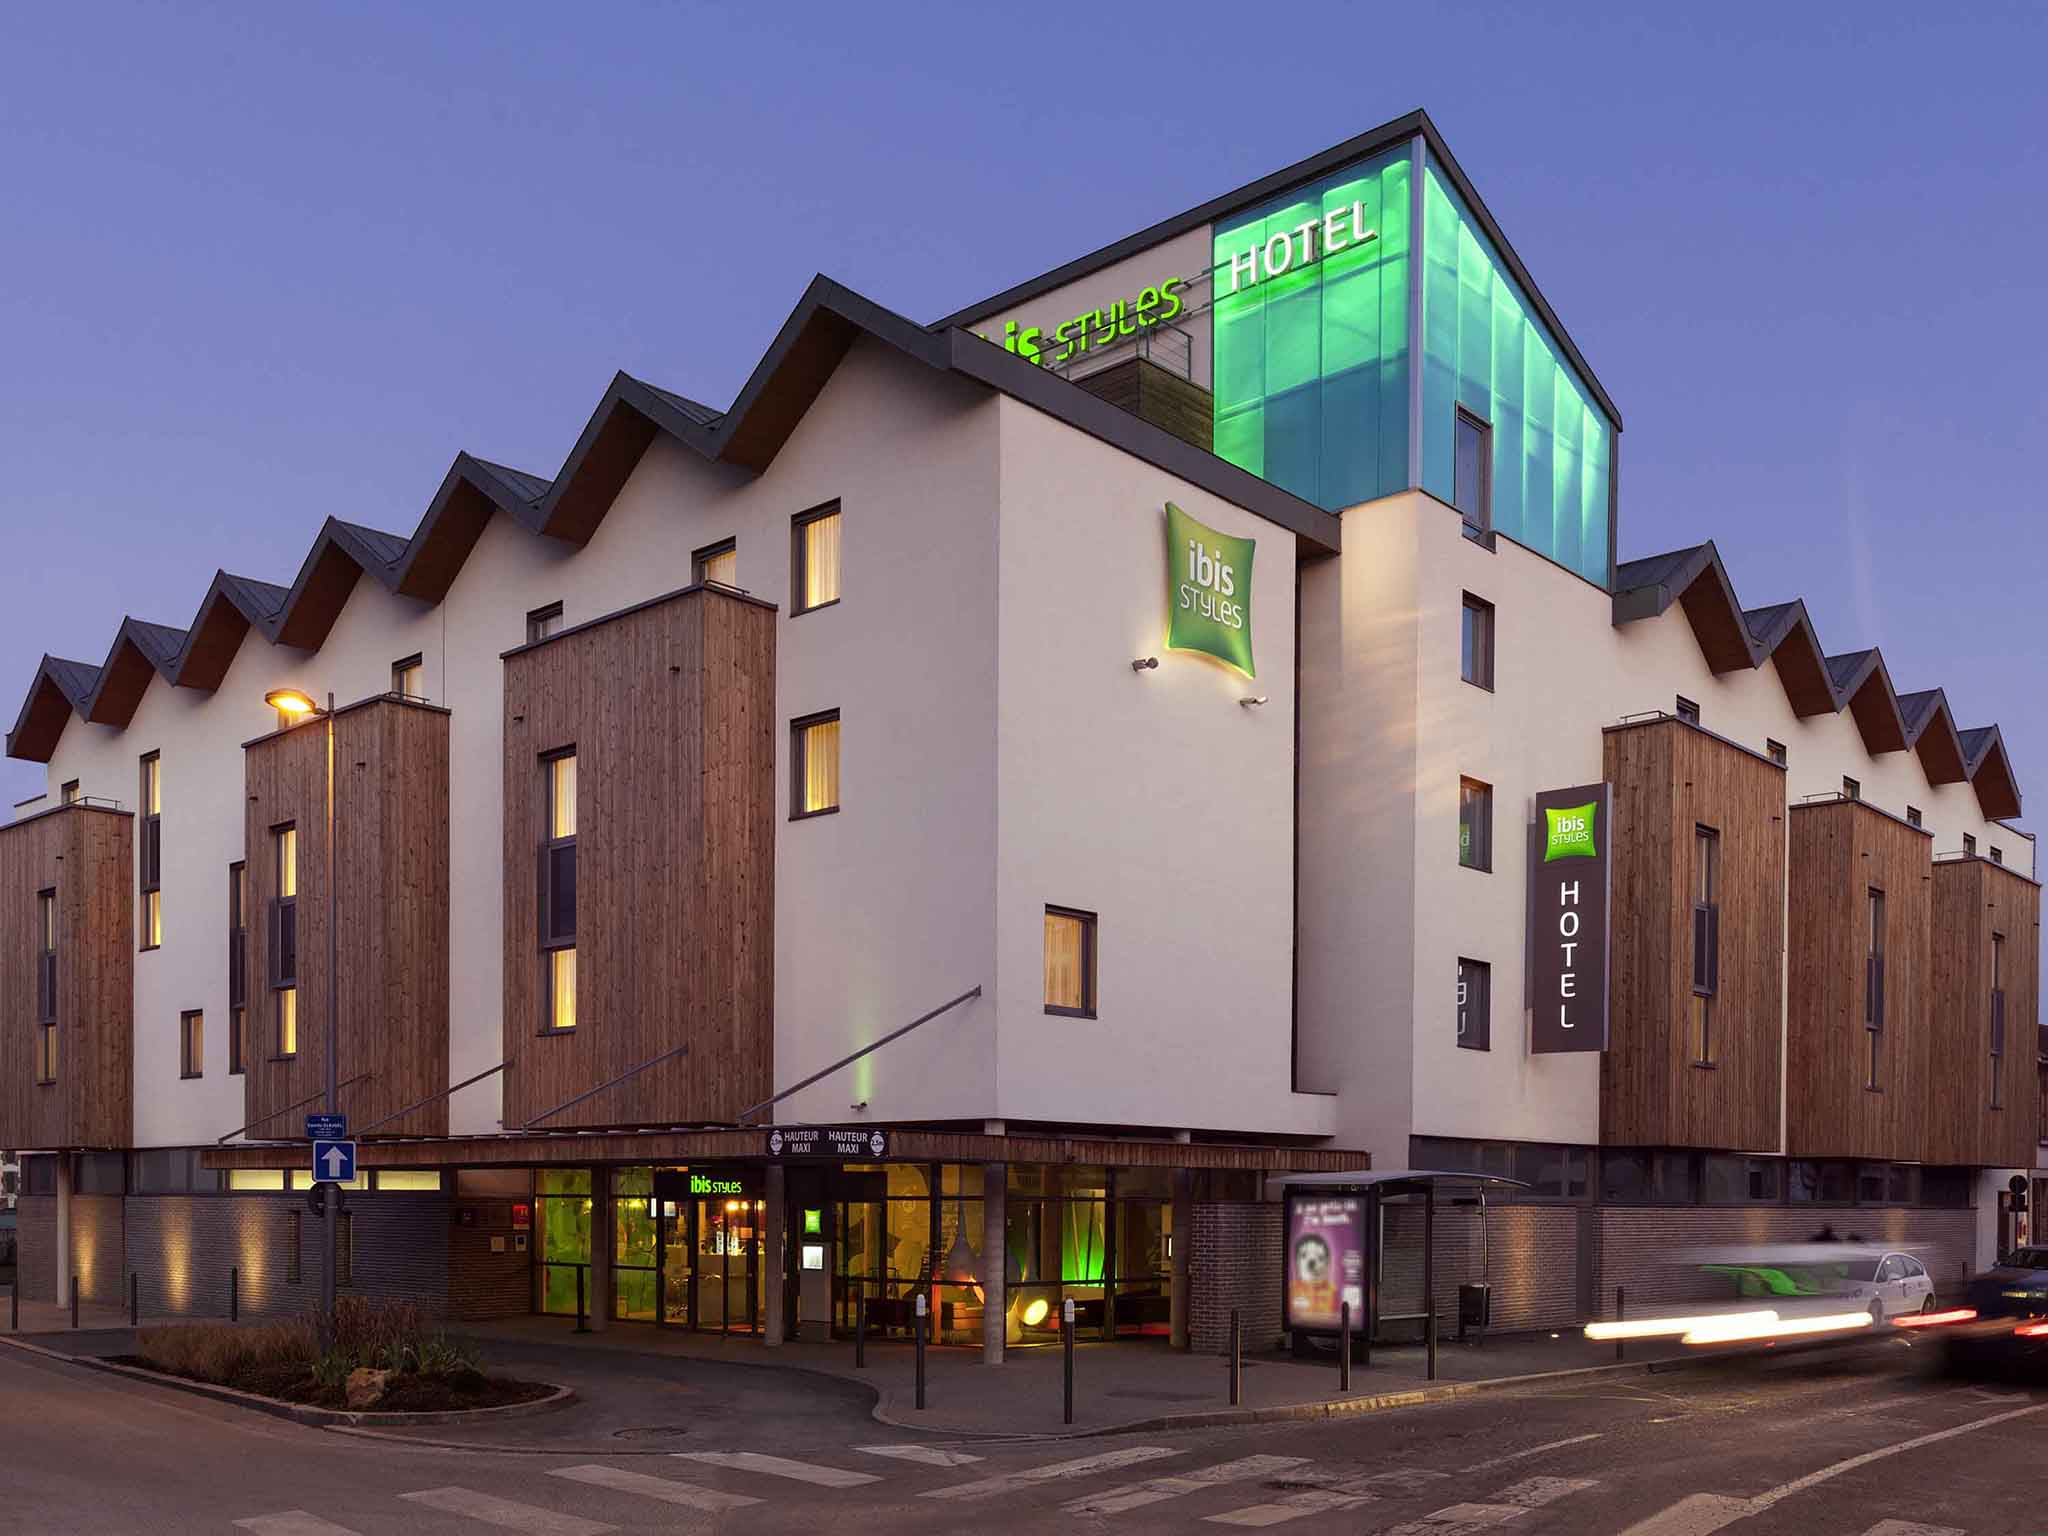 H tel troyes ibis styles troyes centre for Hotels troyes